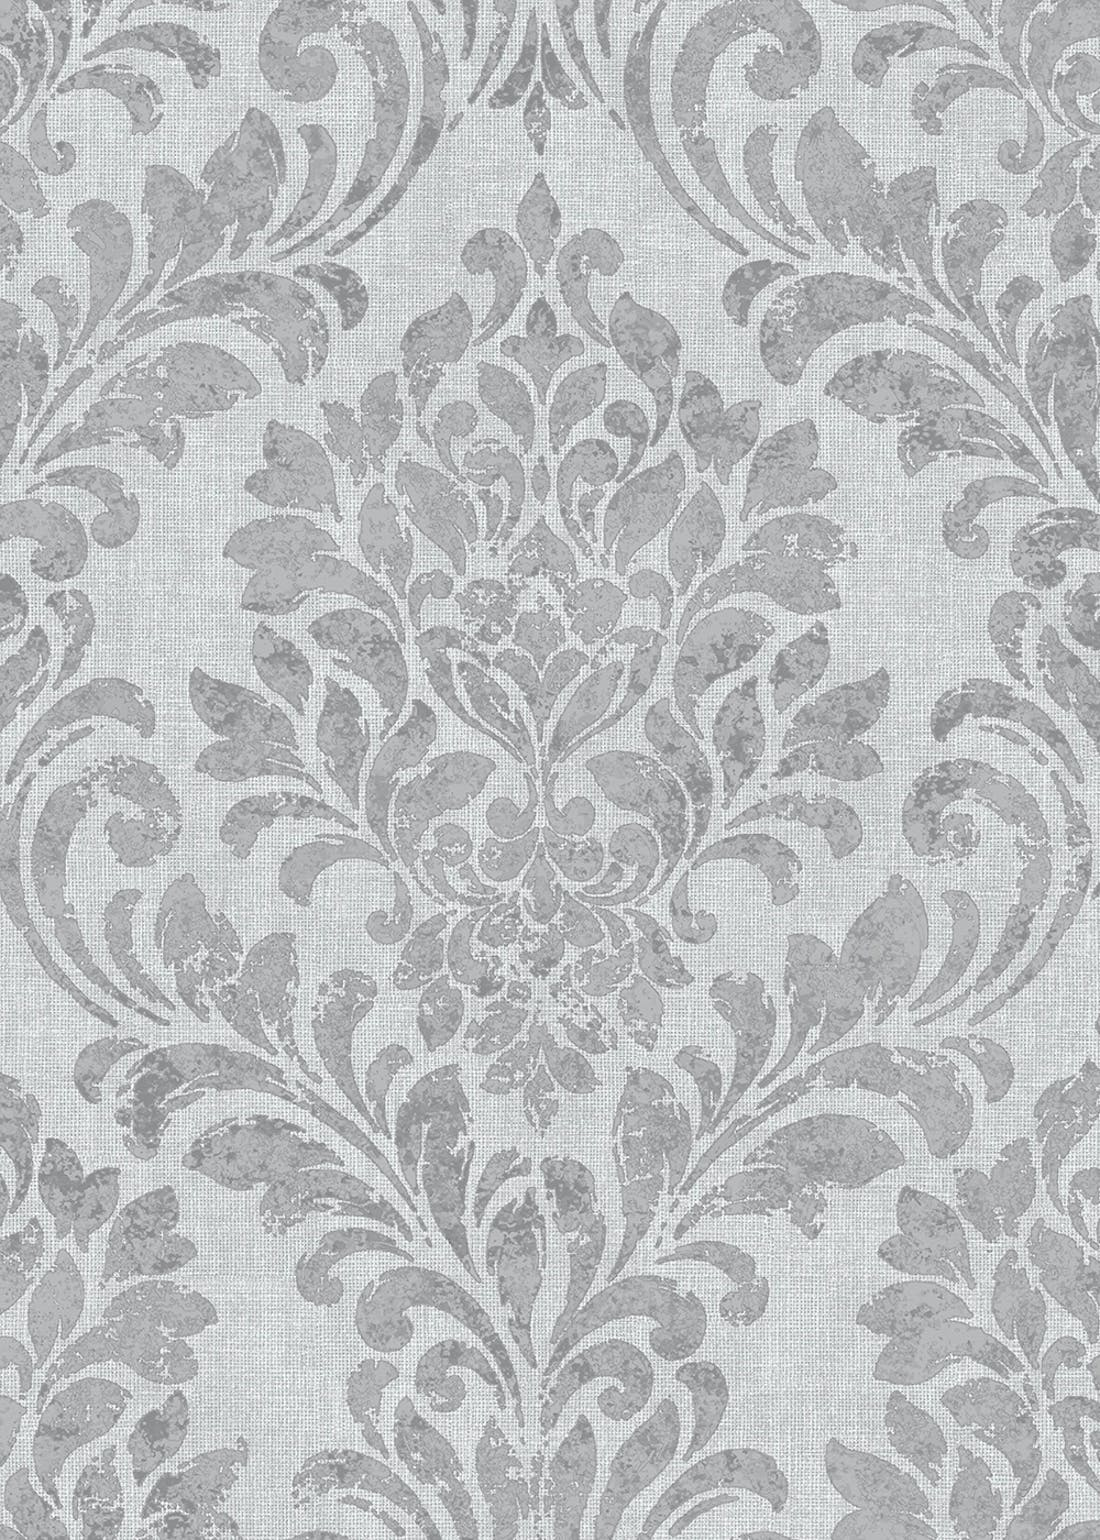 Darcy James Grey El Damask Wallpaper (10.05m x 53cm)